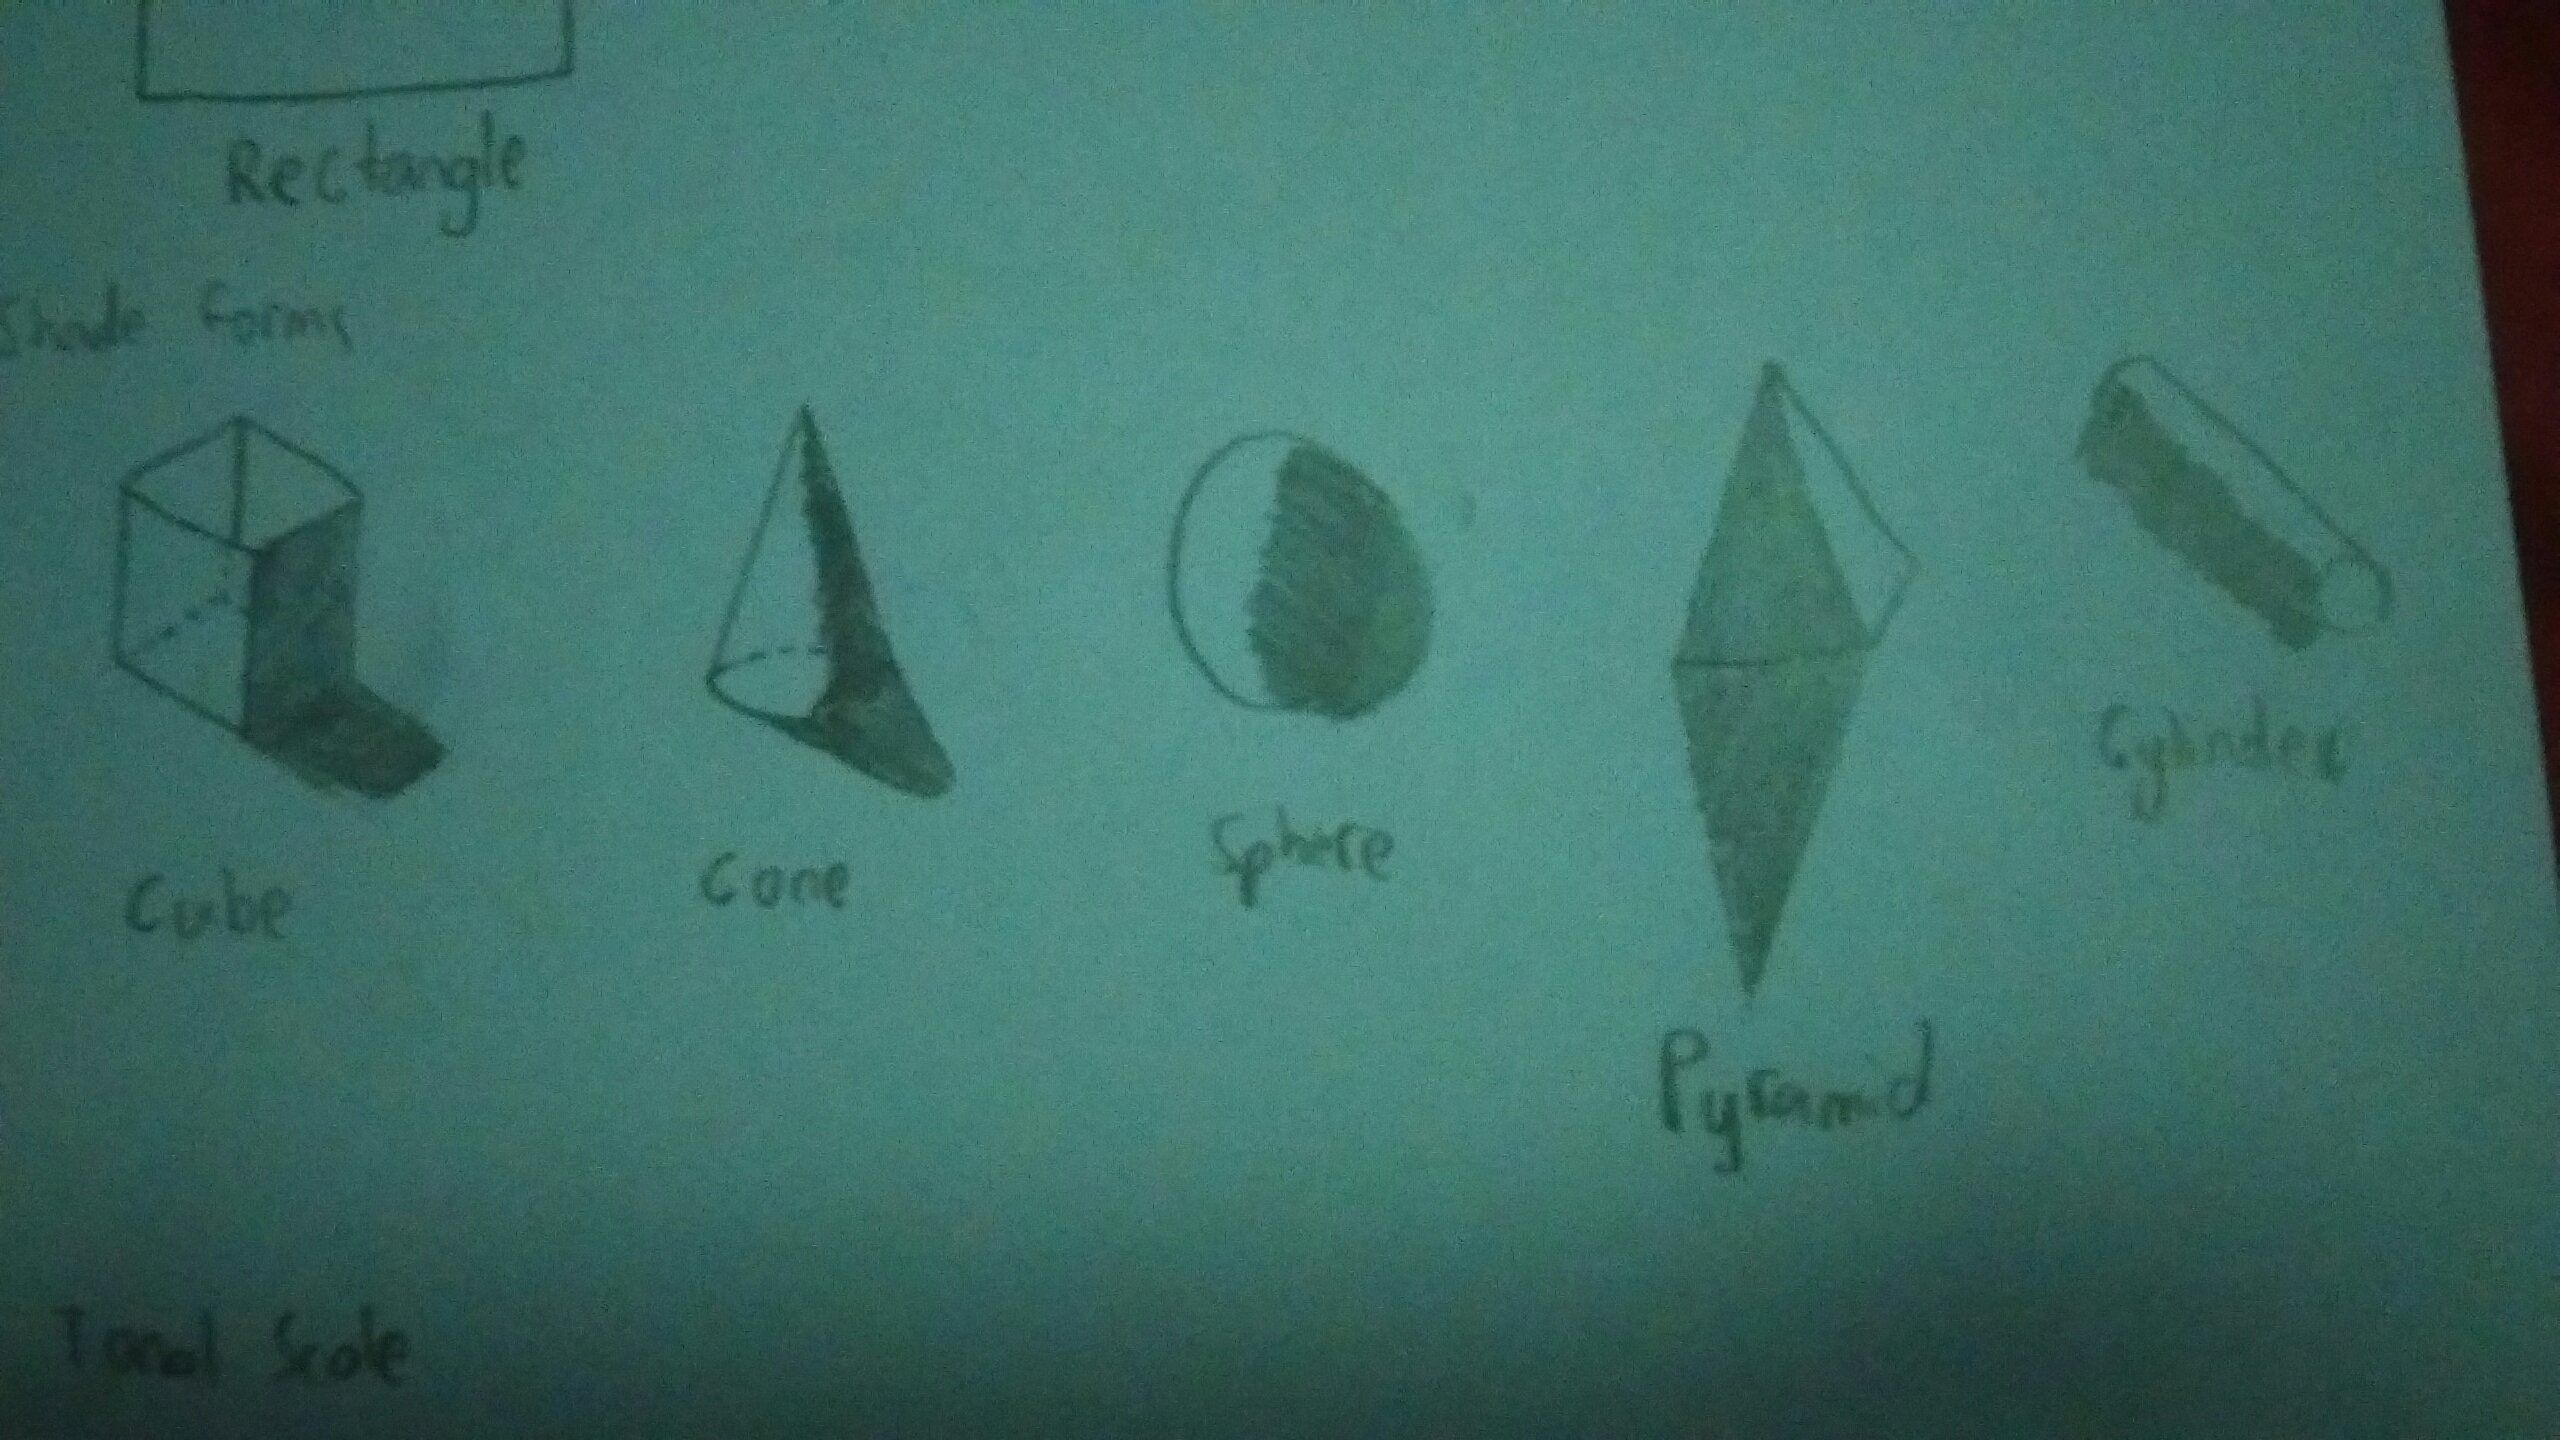 5 Shaded Forms